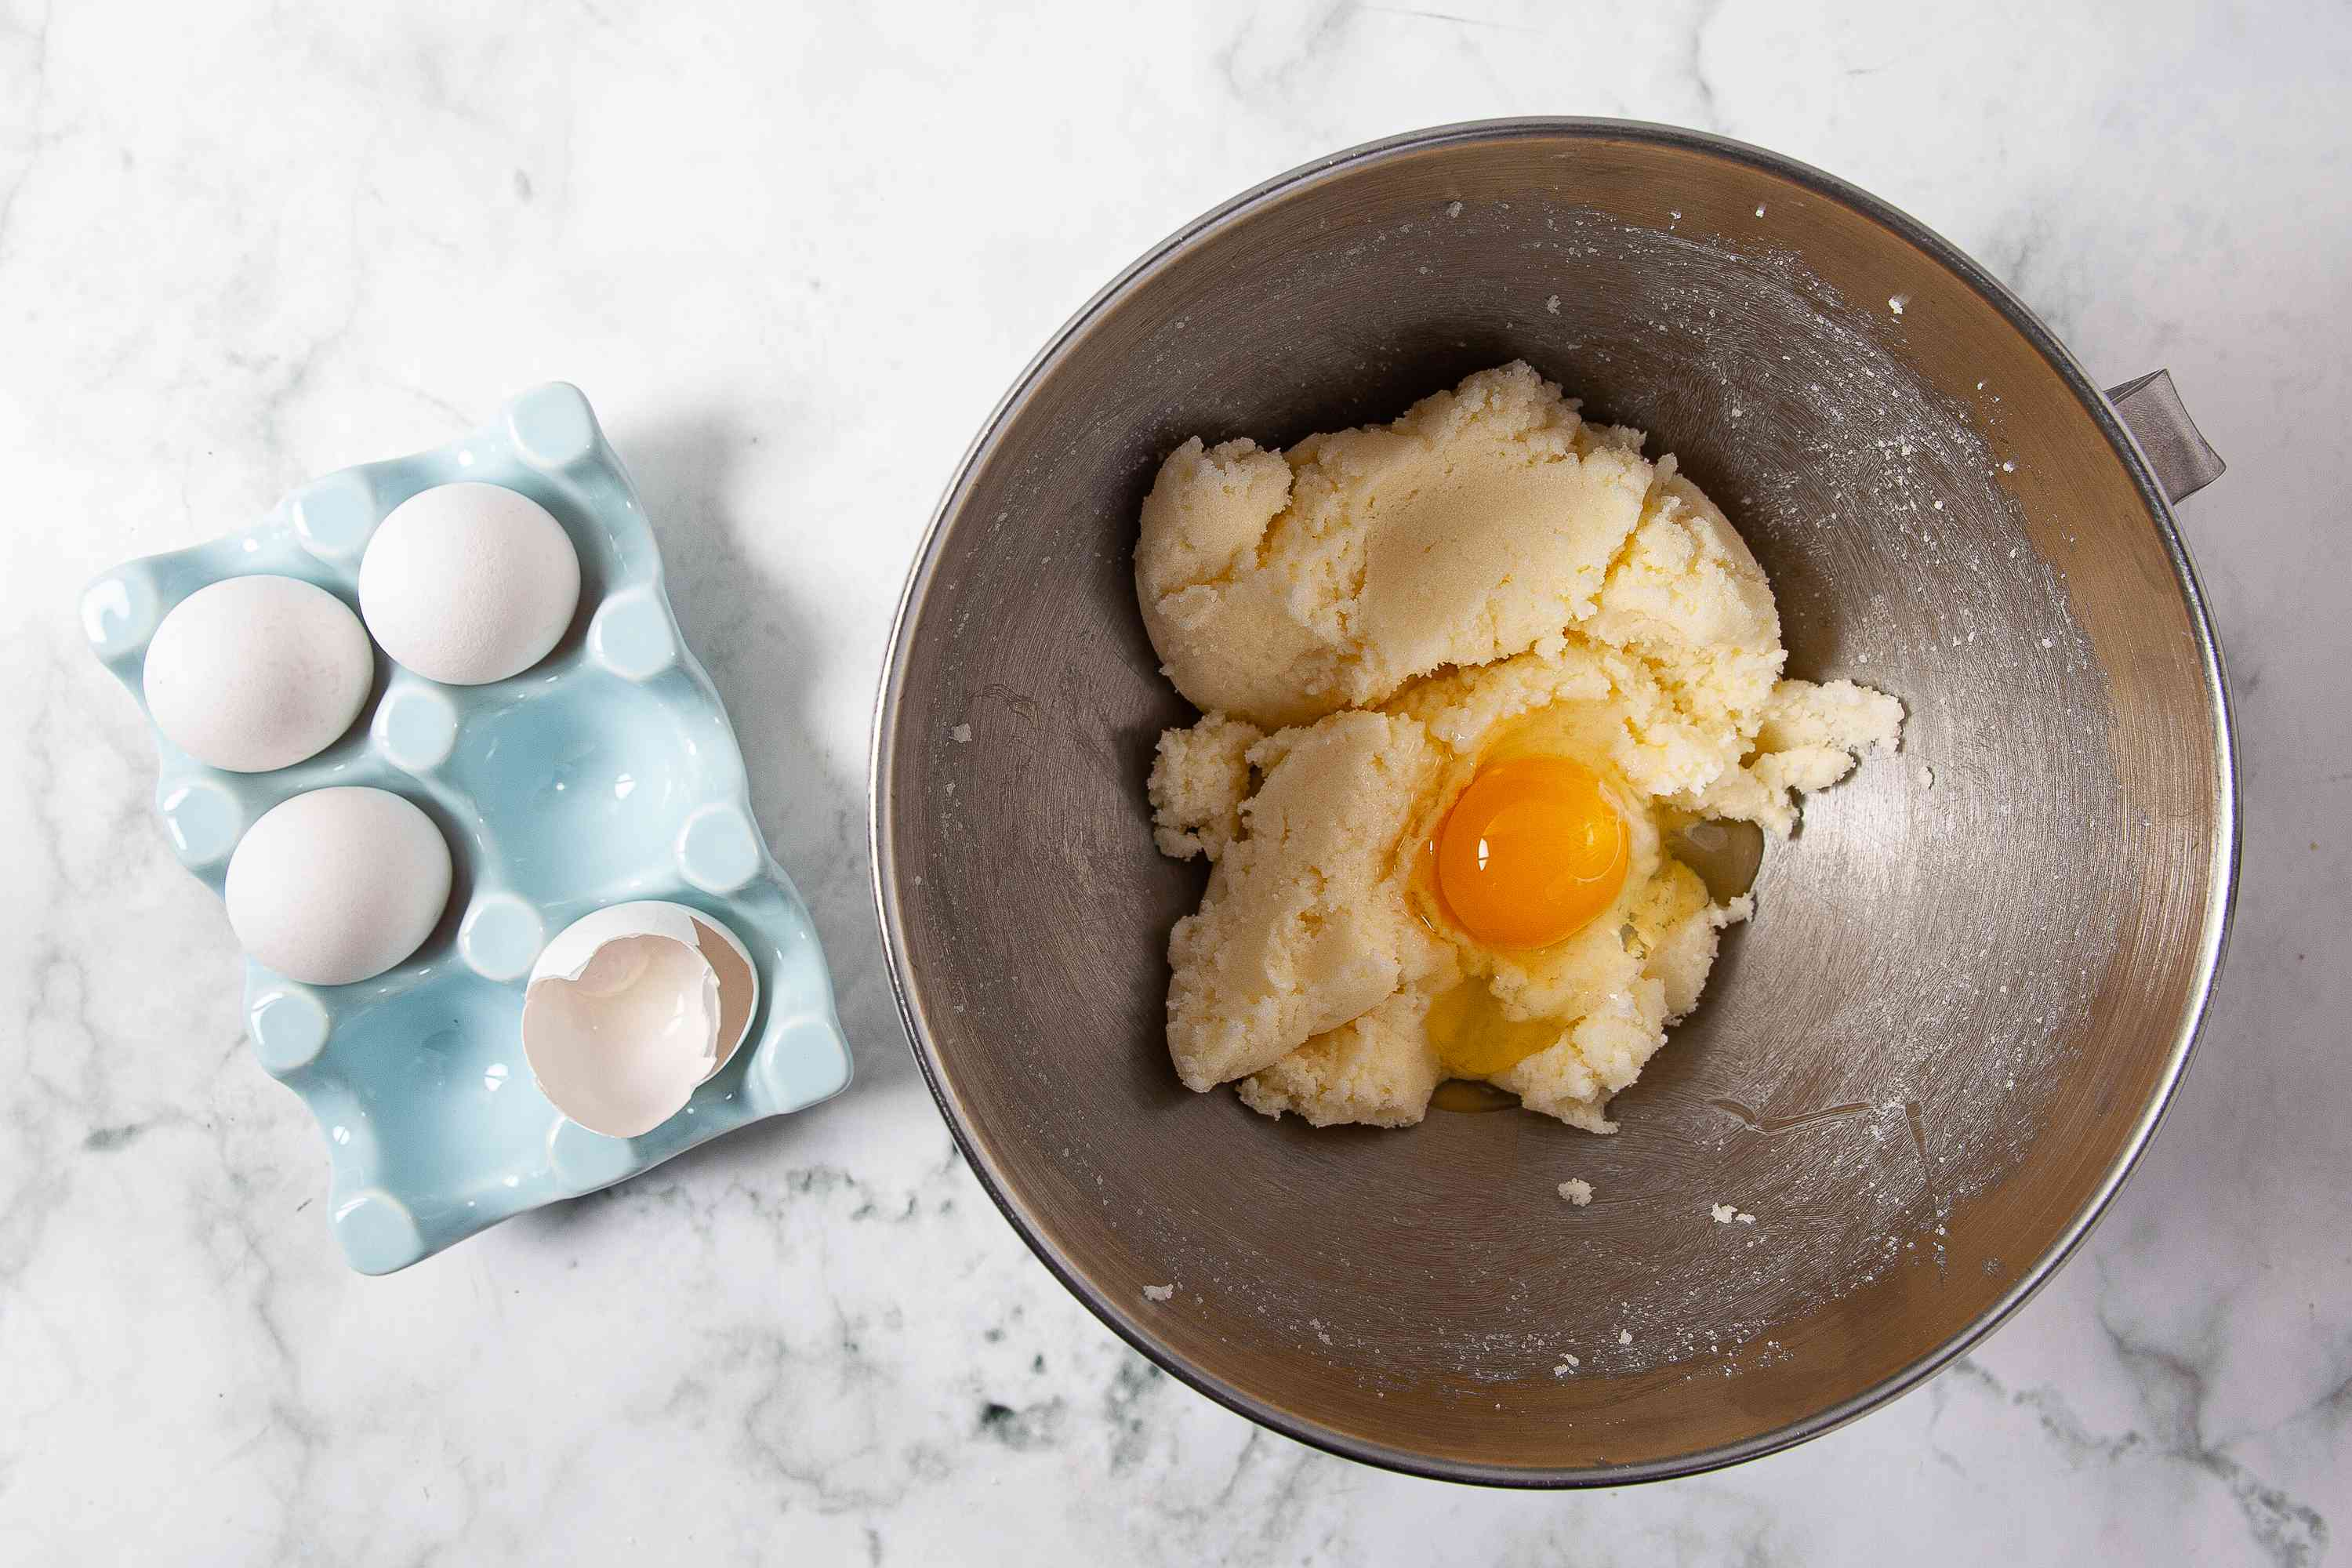 Adding eggs to the creamed butter and sugar